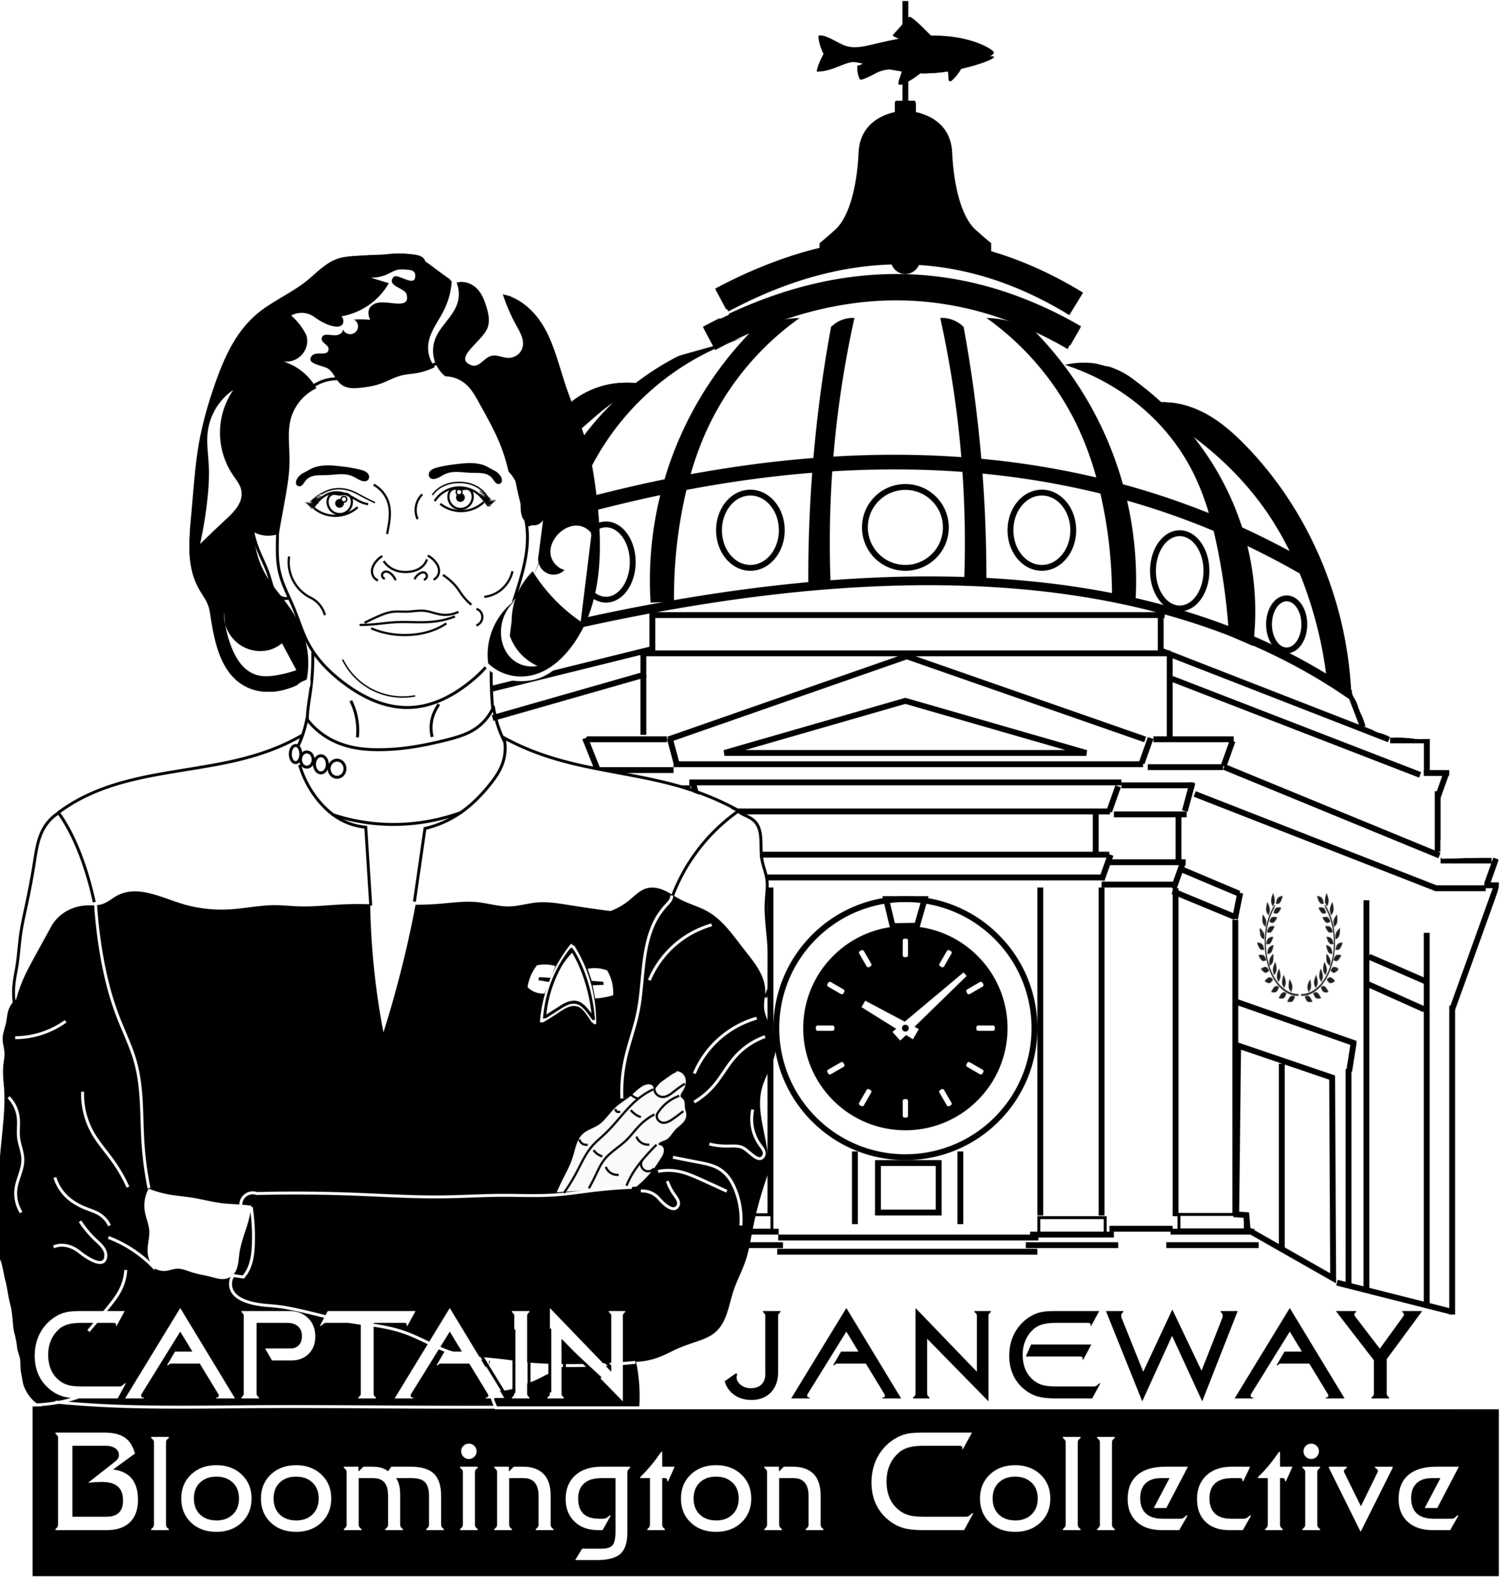 Captain Janeway Bloomington Collective